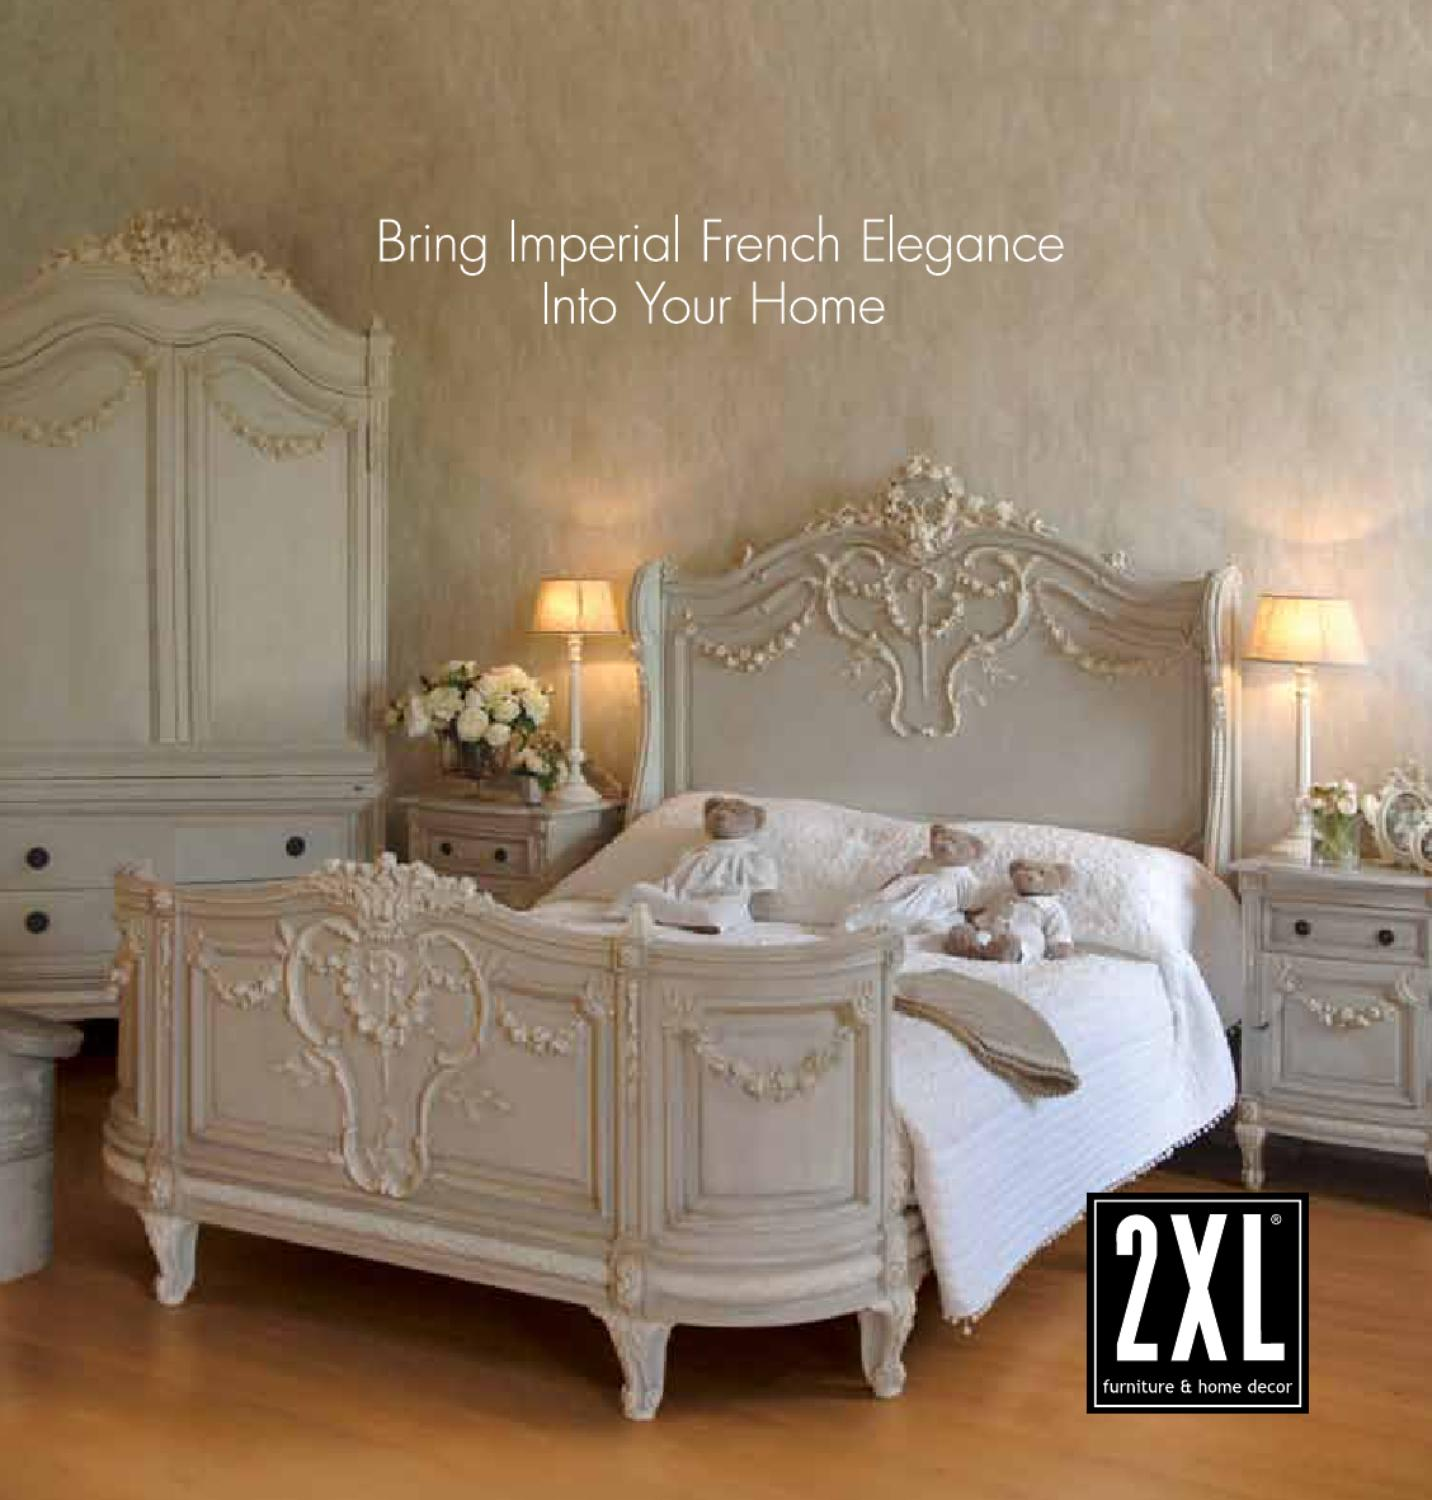 2xl furniture home decor by hot media issuu rh issuu com 2xl uk 2xl size uk